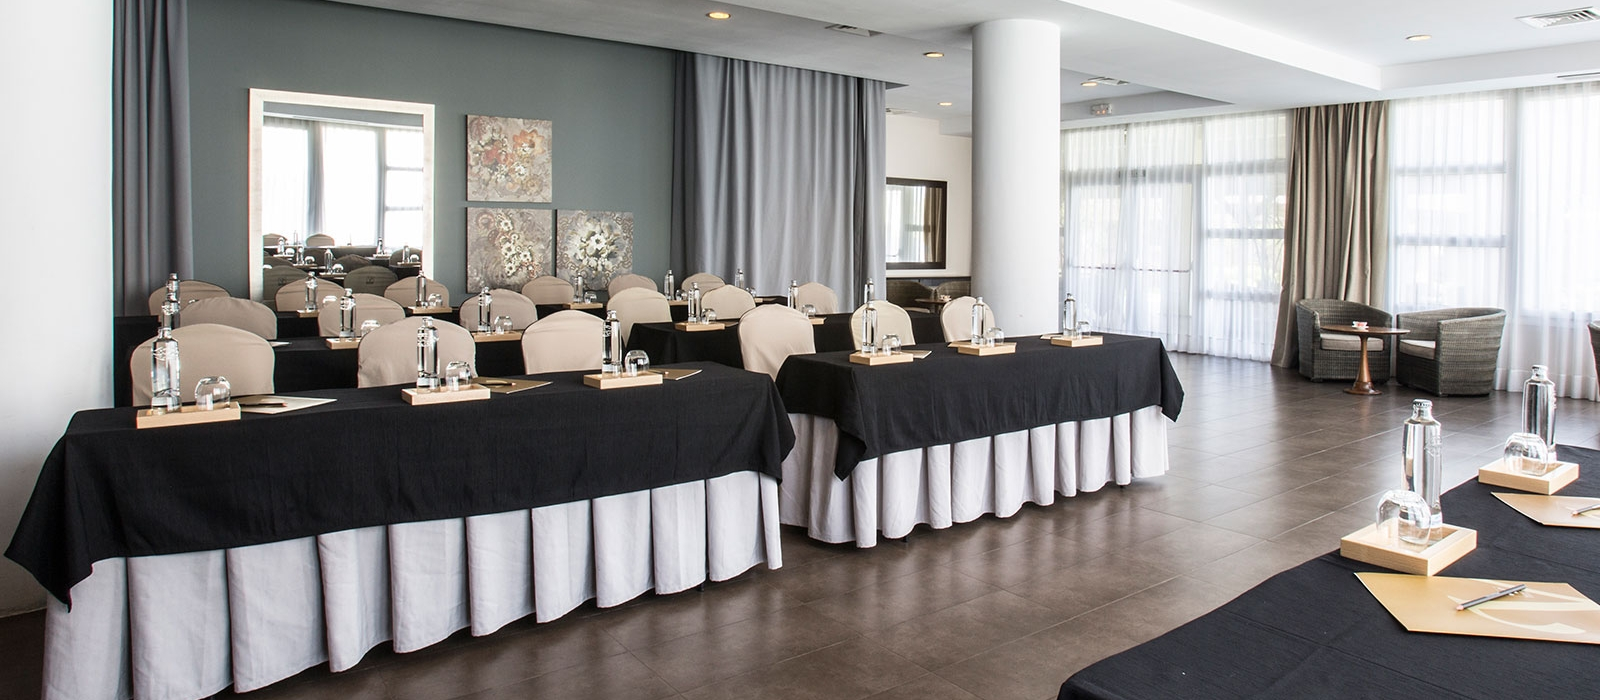 Services Hotel Cádiz Costa Golf - Vincci Hotels - Conference rooms